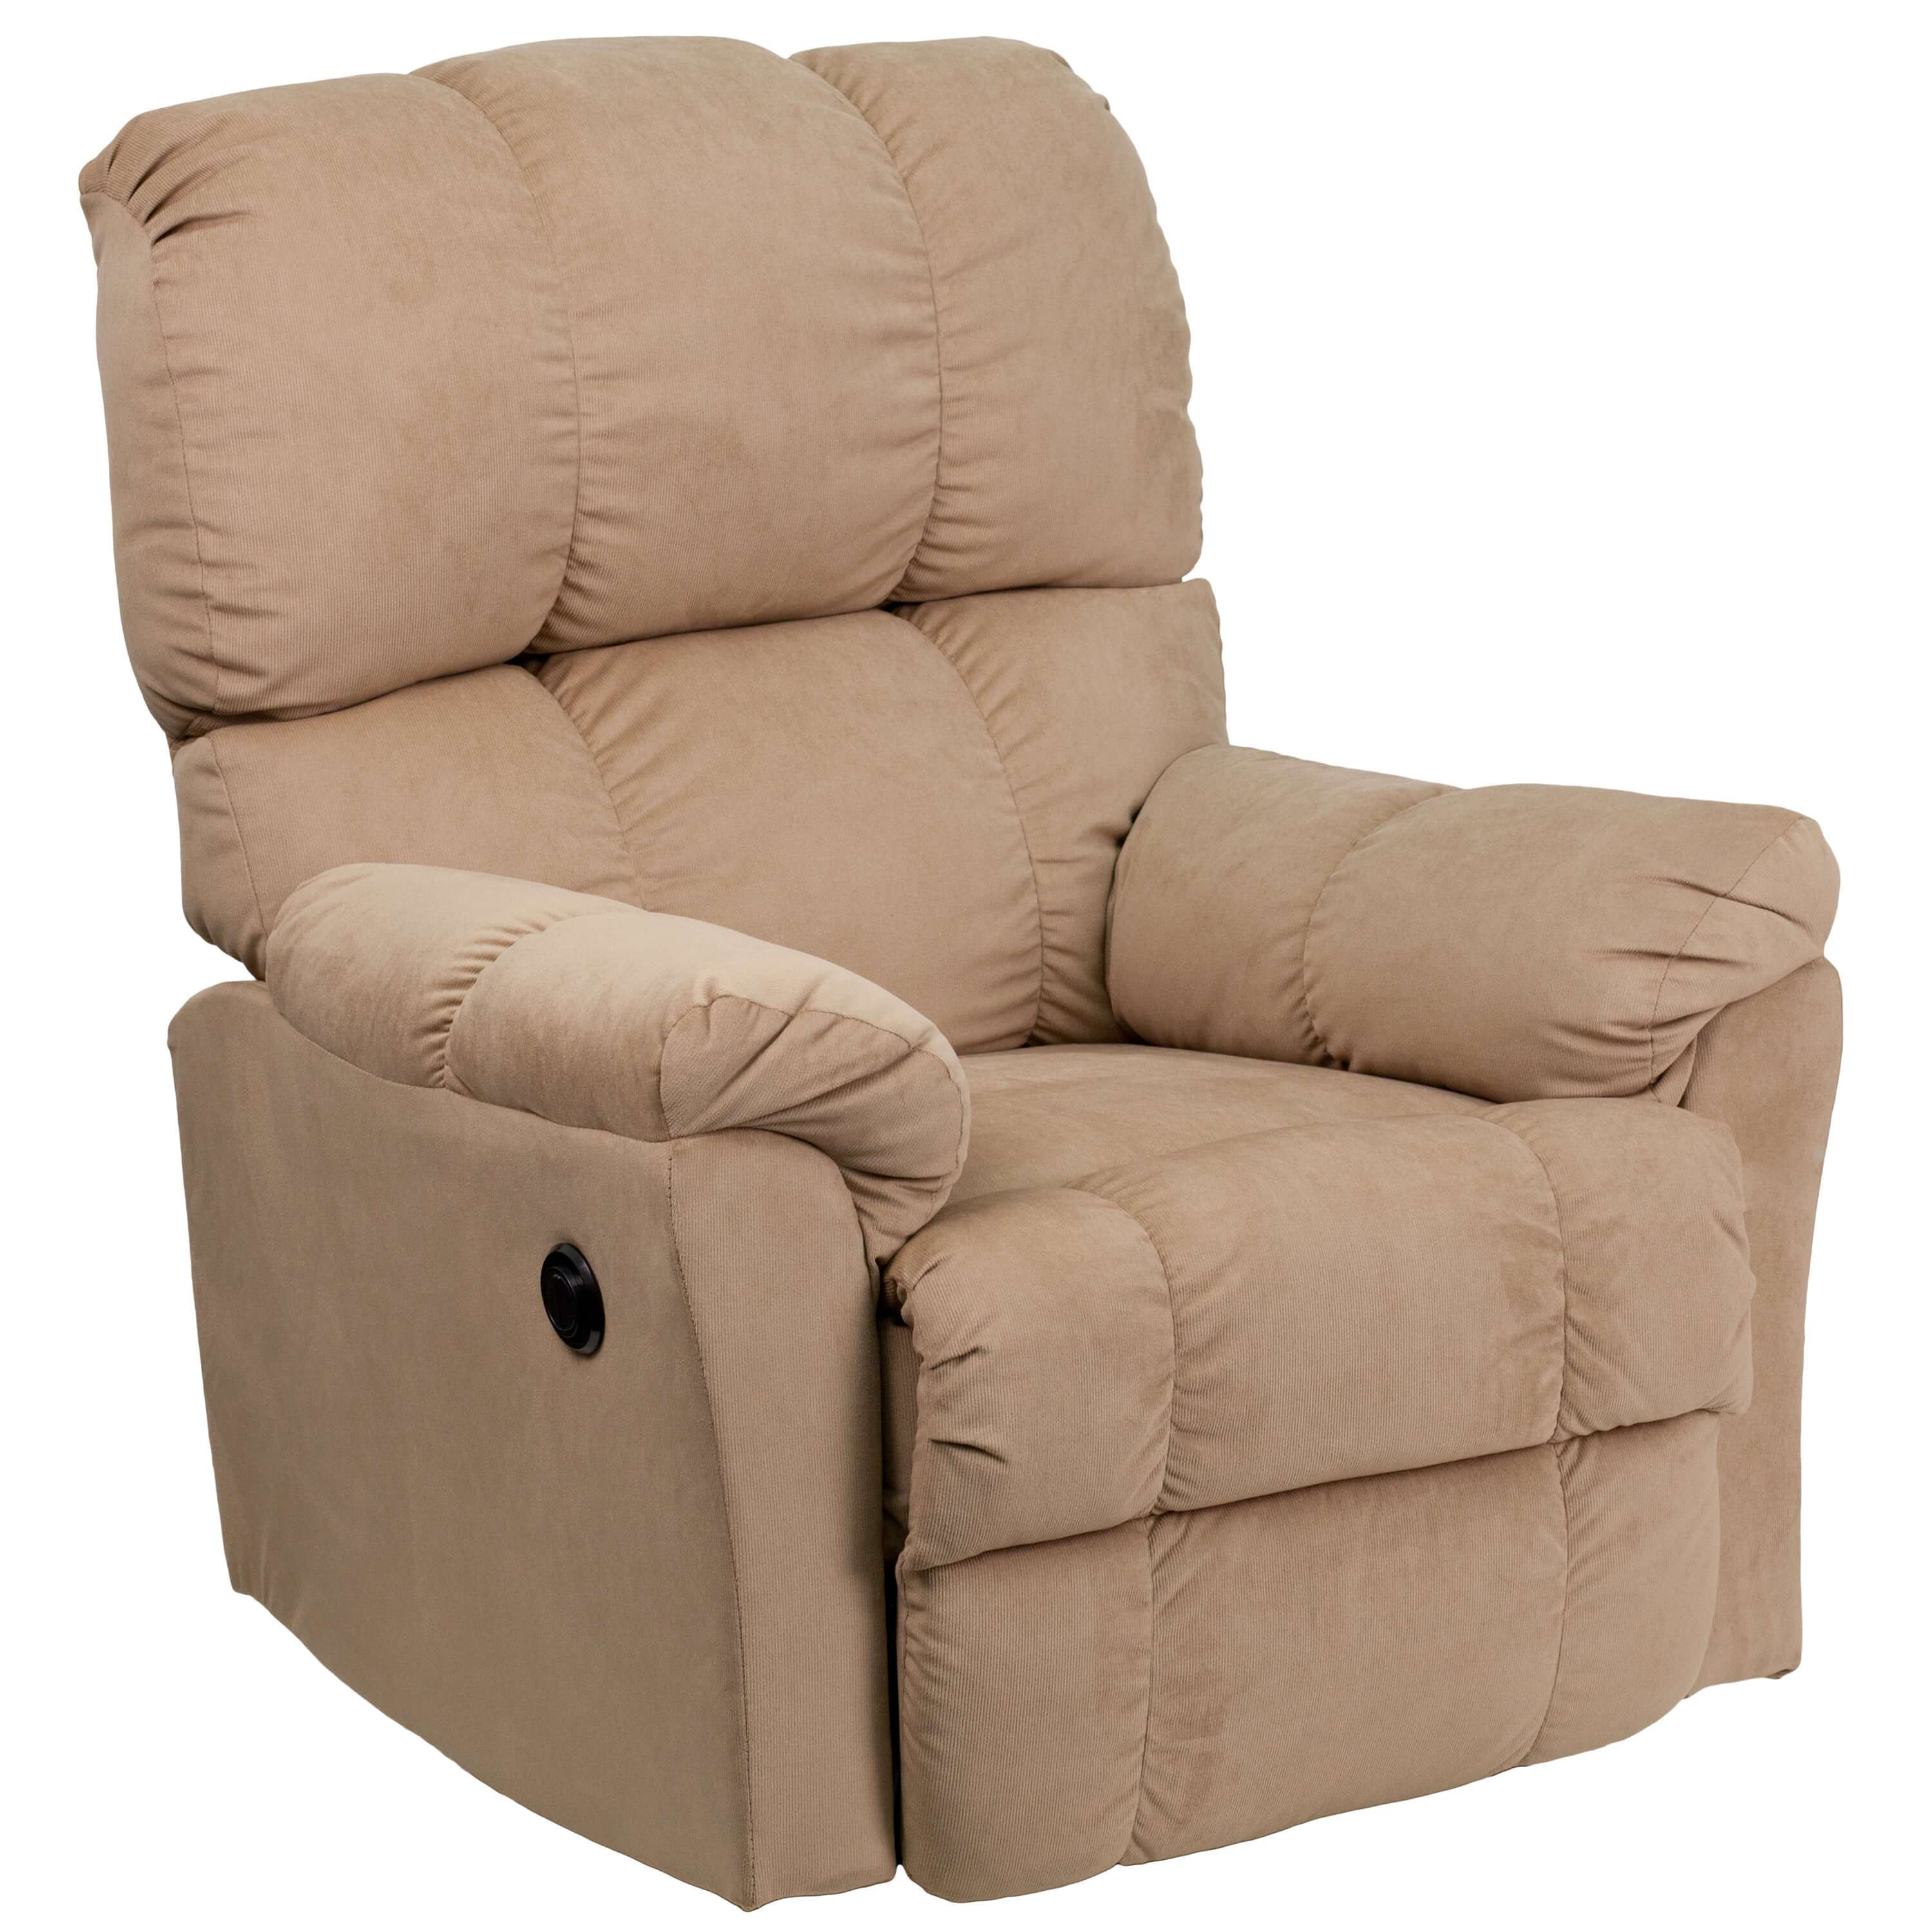 contemporary-recliners-microfiber-recliner-1.jpg